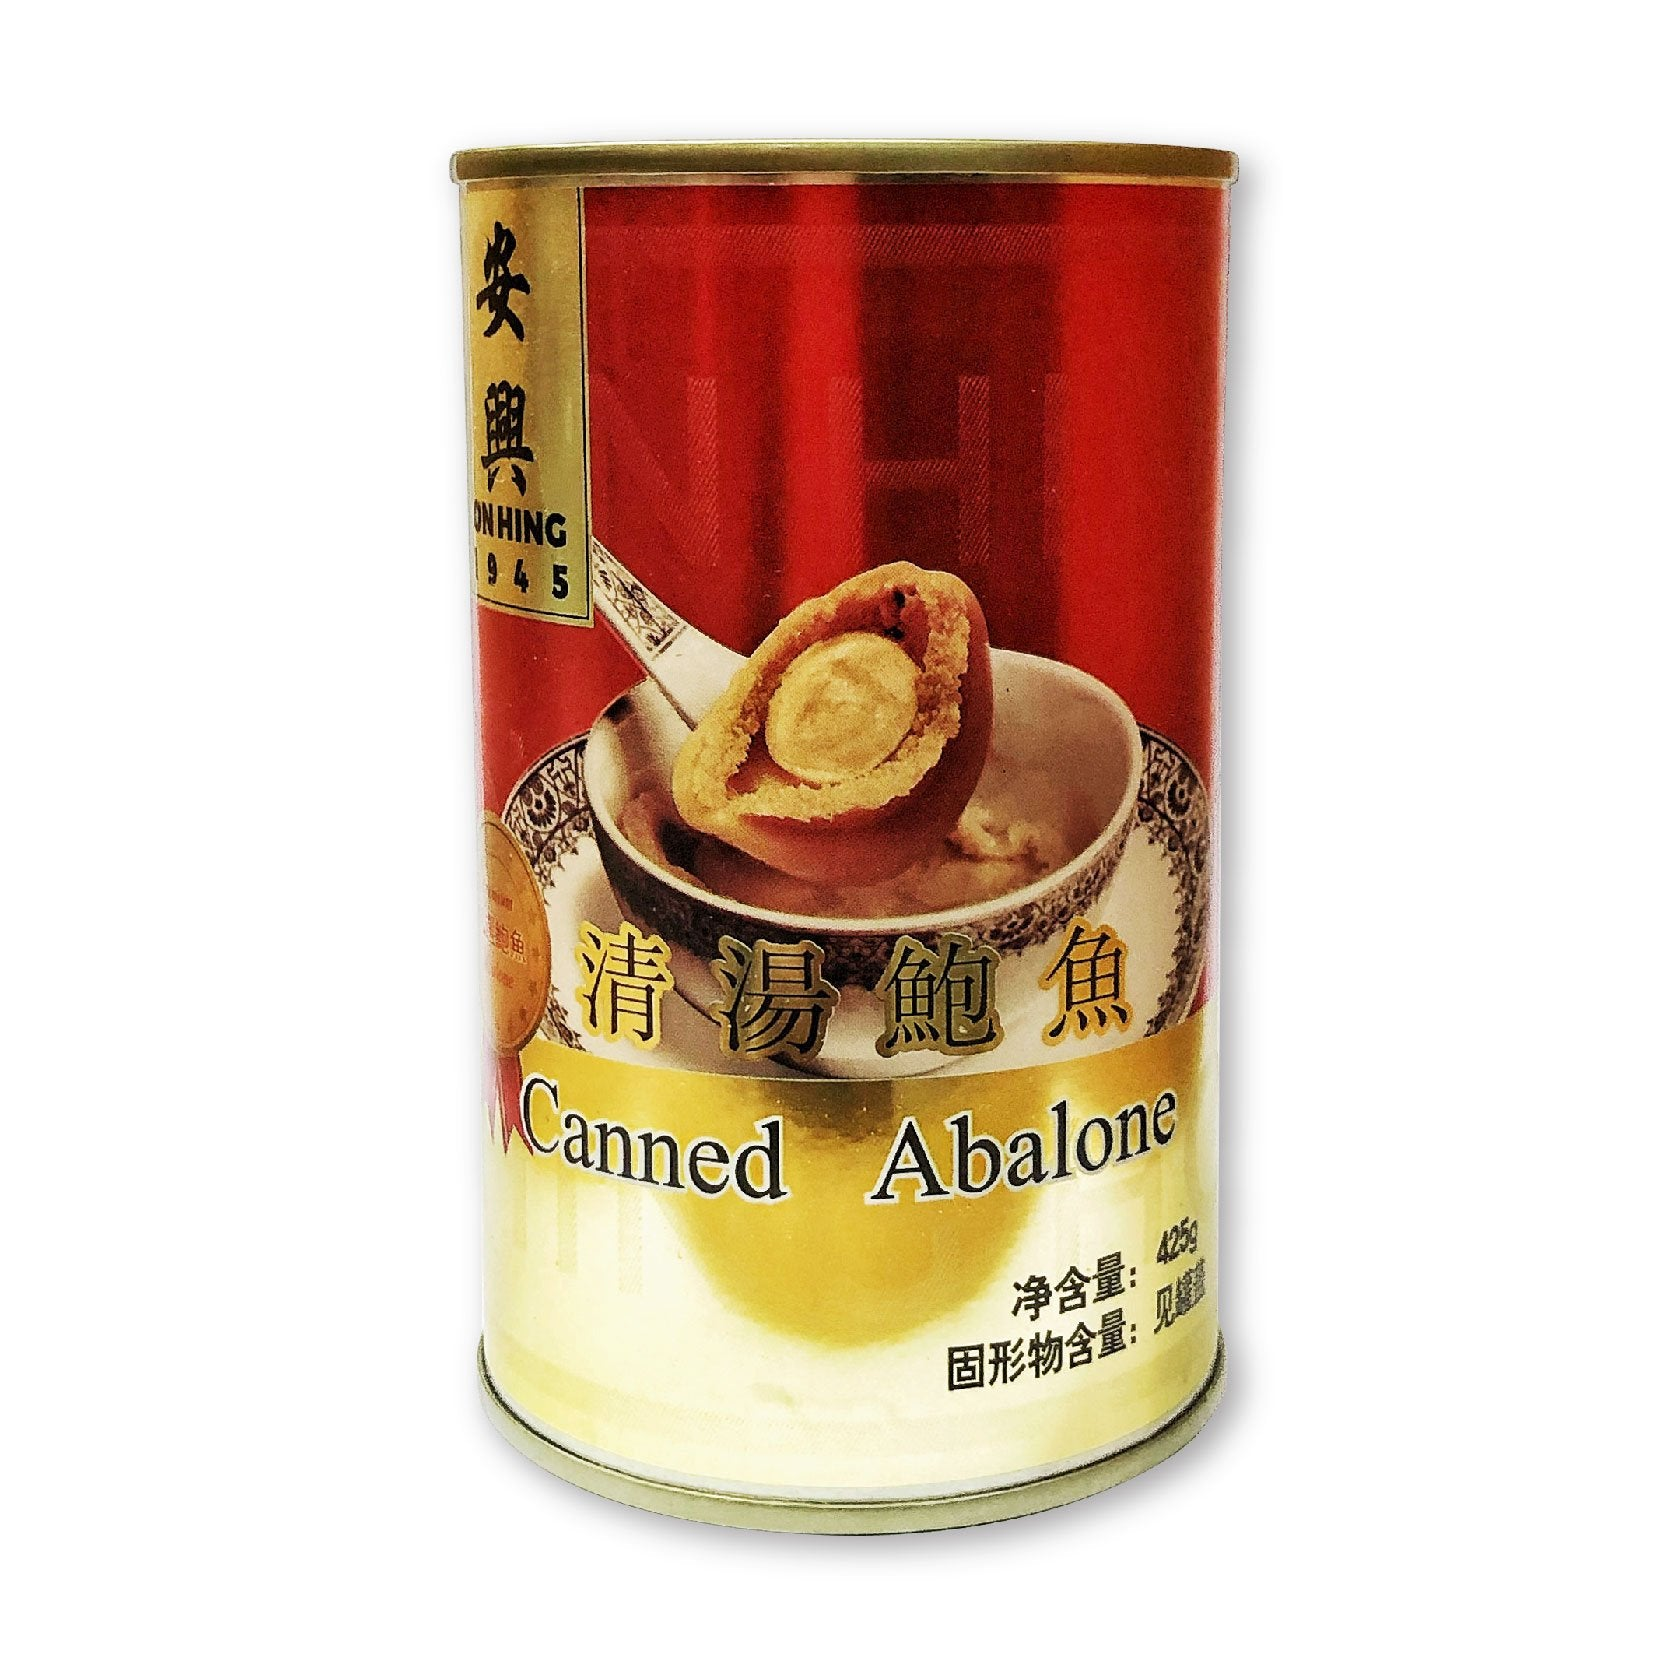 [Free Gift] On Hing Canned Abalone (6 Pieces/80g)